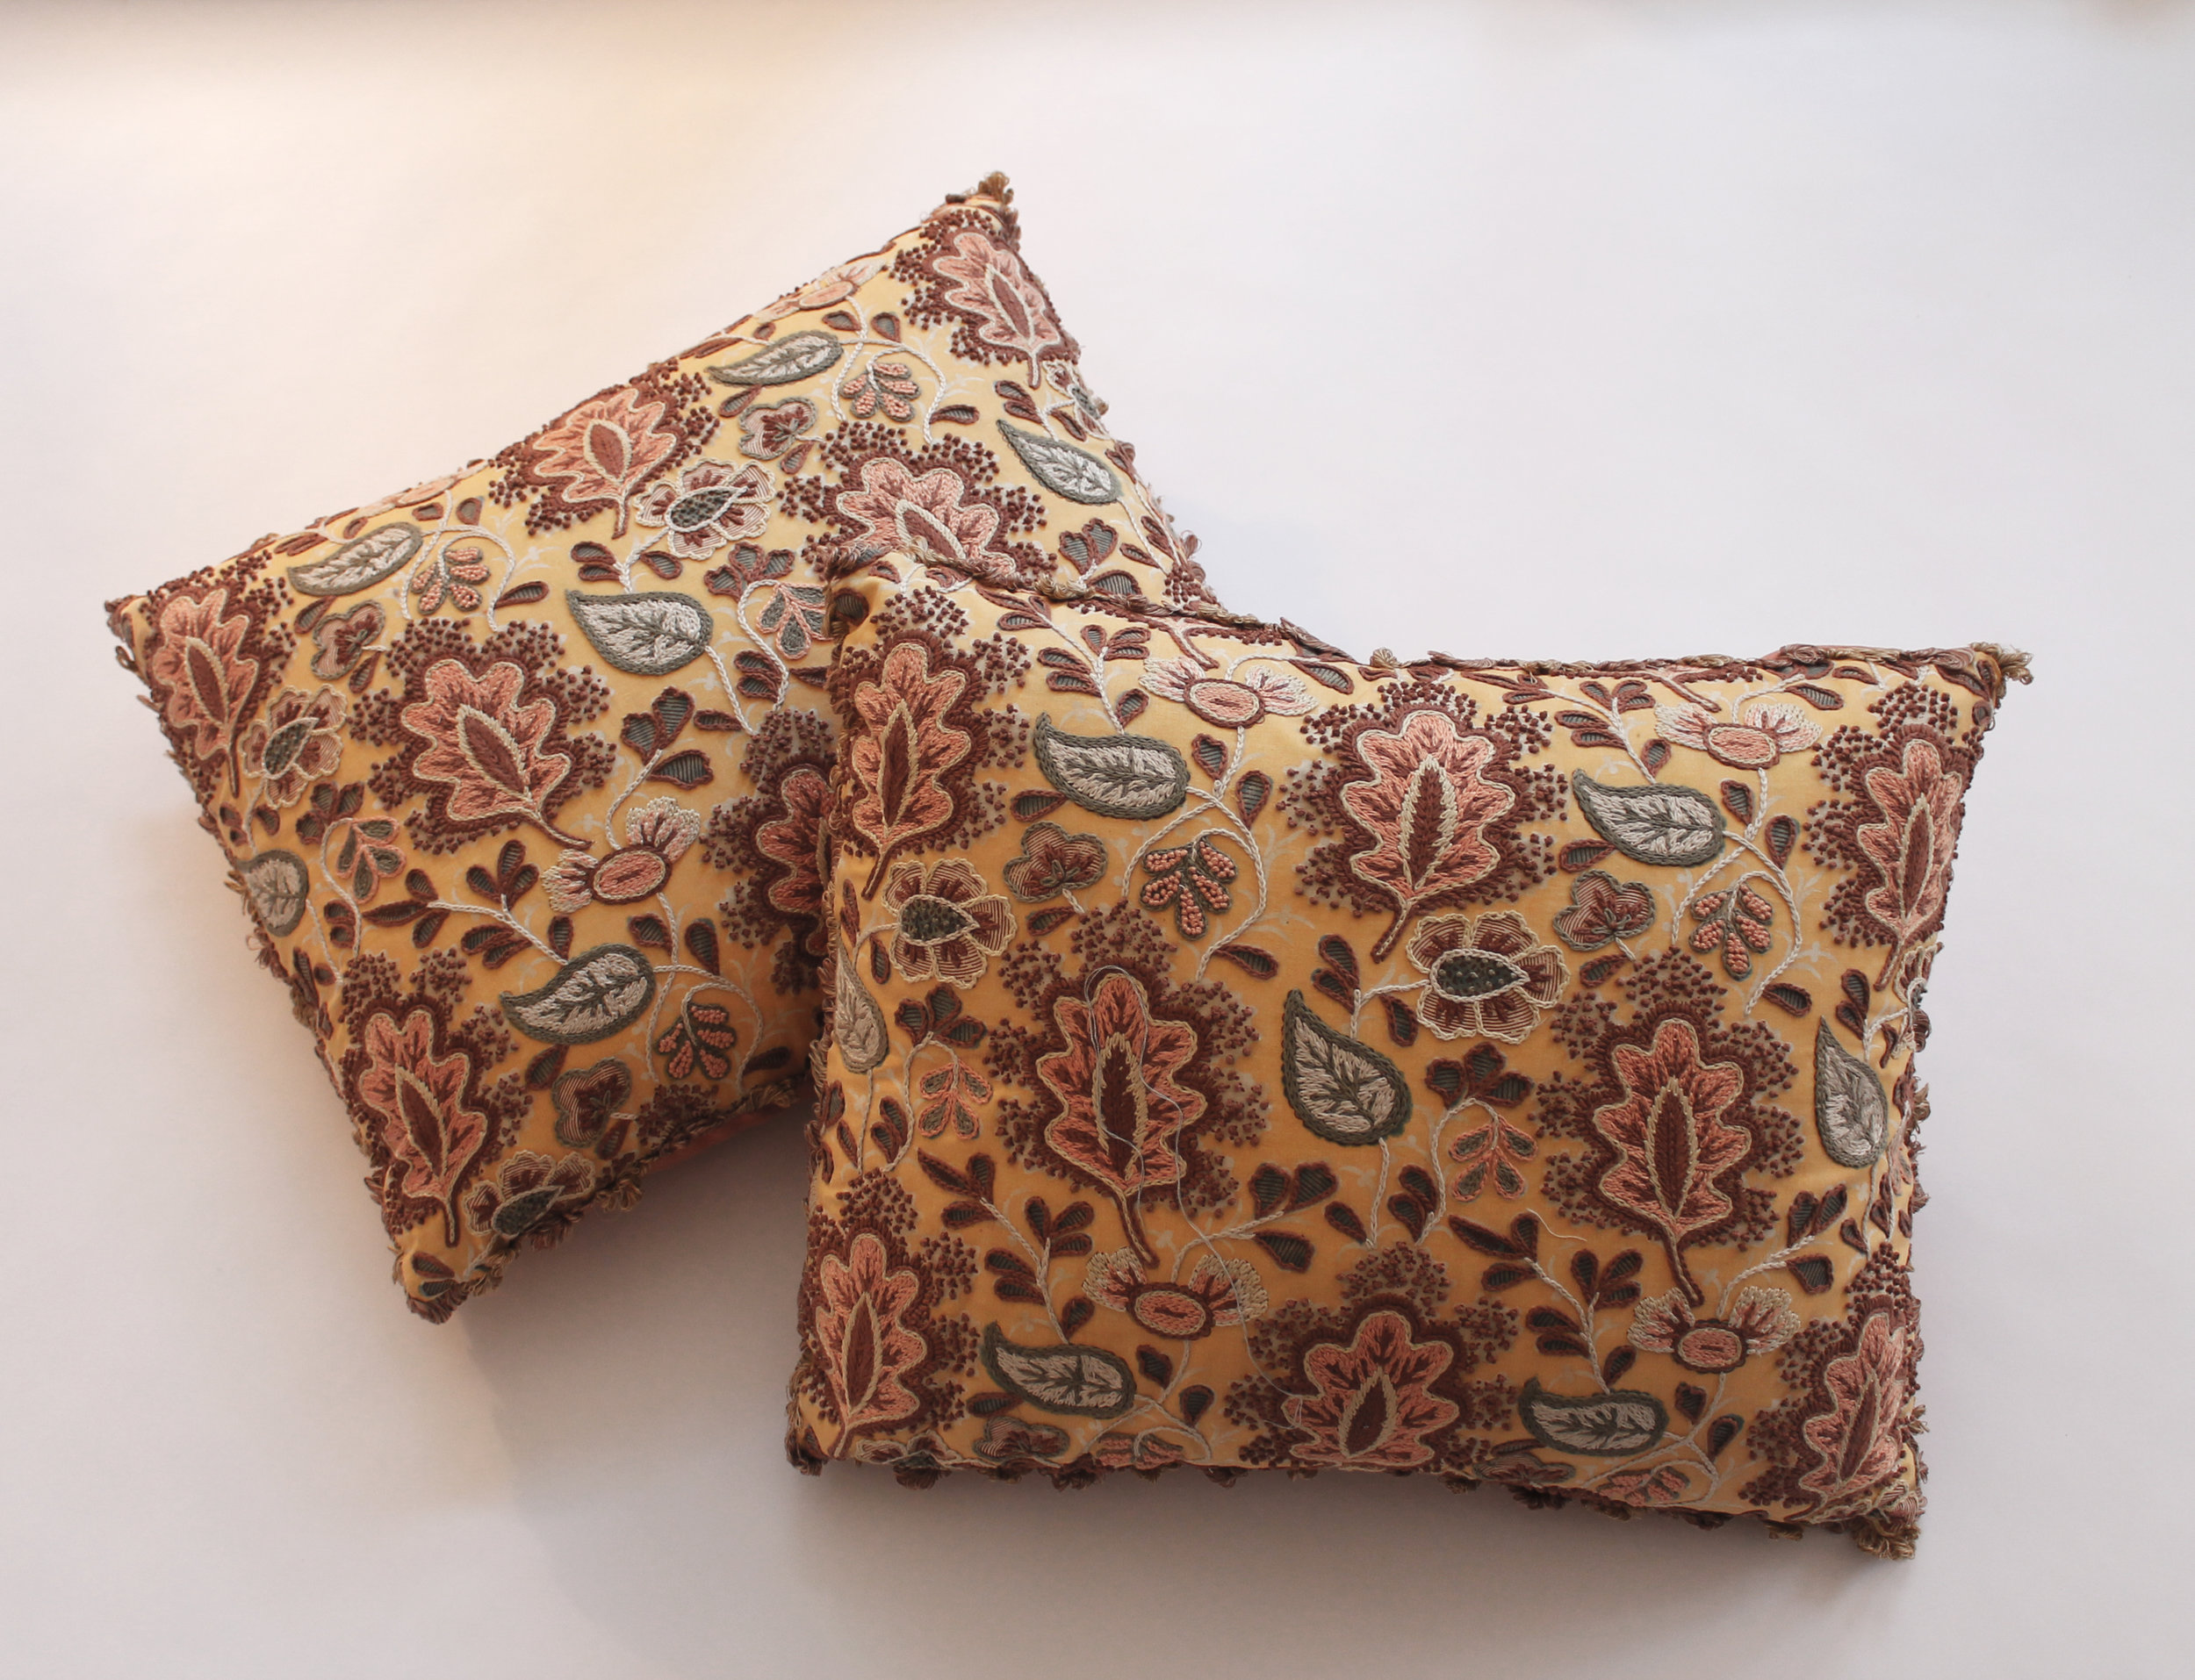 Embroidered Claremont fabric with French Knots  Retail Price $1500.00 (pair)